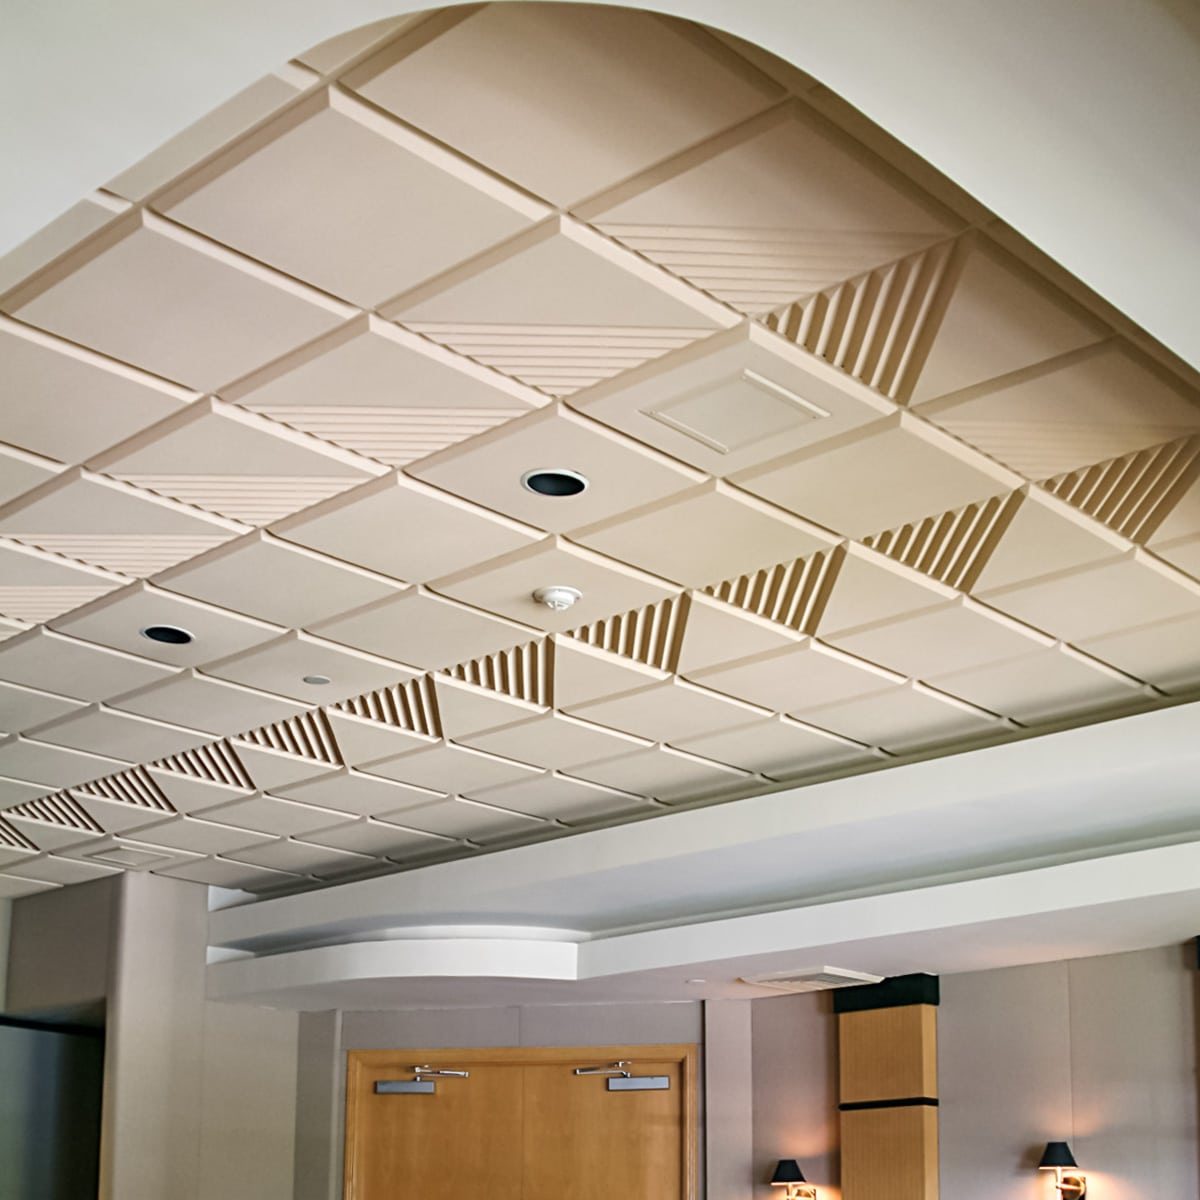 The fountains country club acoustical solutions the fountains country club sonex contour ceiling tiles by pinta acoustic inc used dailygadgetfo Image collections